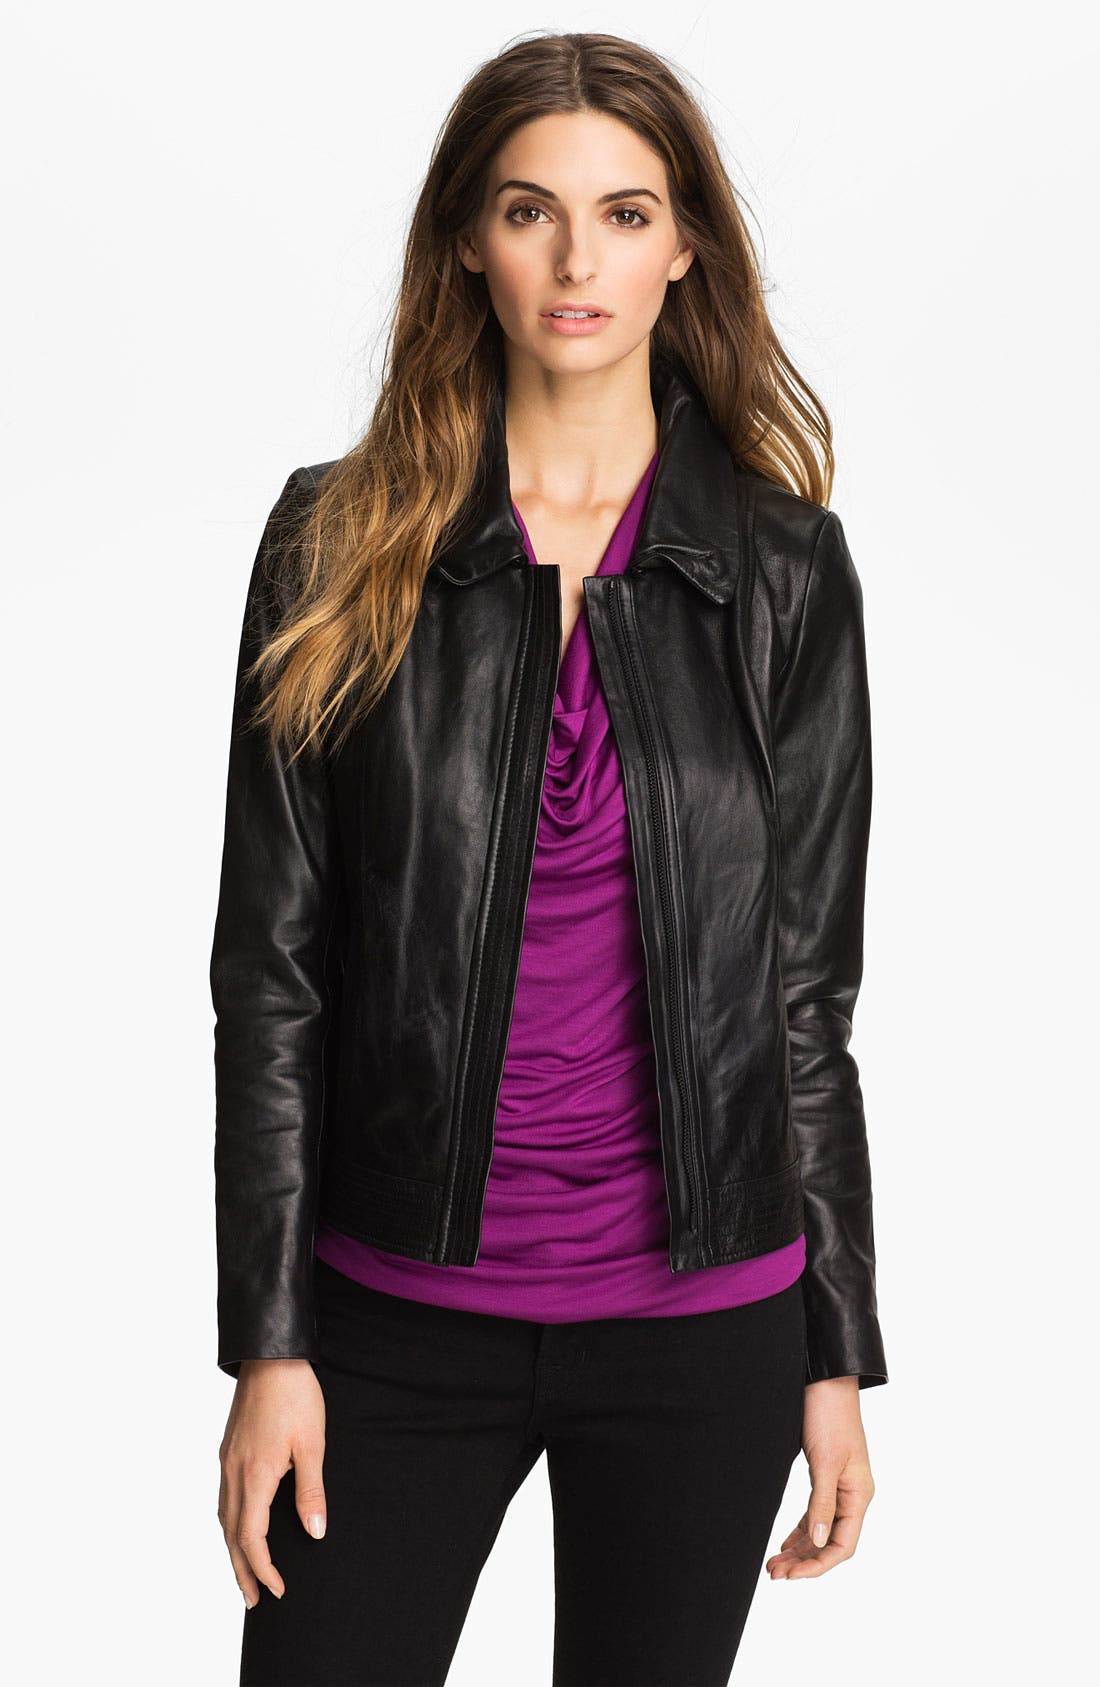 Alternate Image 1 Selected - Classiques Entier® 'Brenna' Leather Jacket with Faux Fur